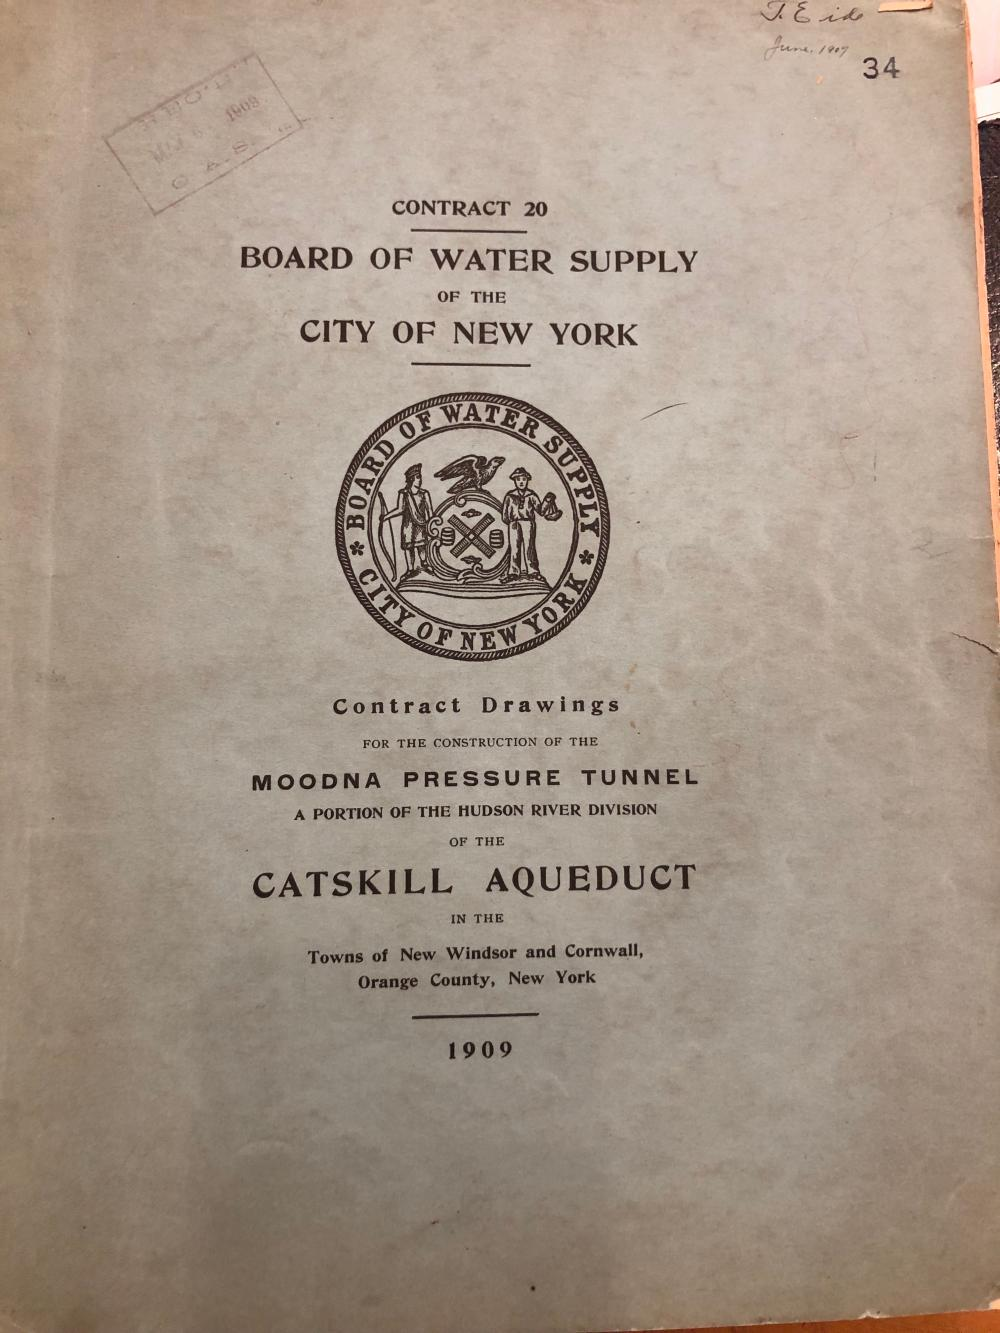 1909 Catskills aqueduct water supply